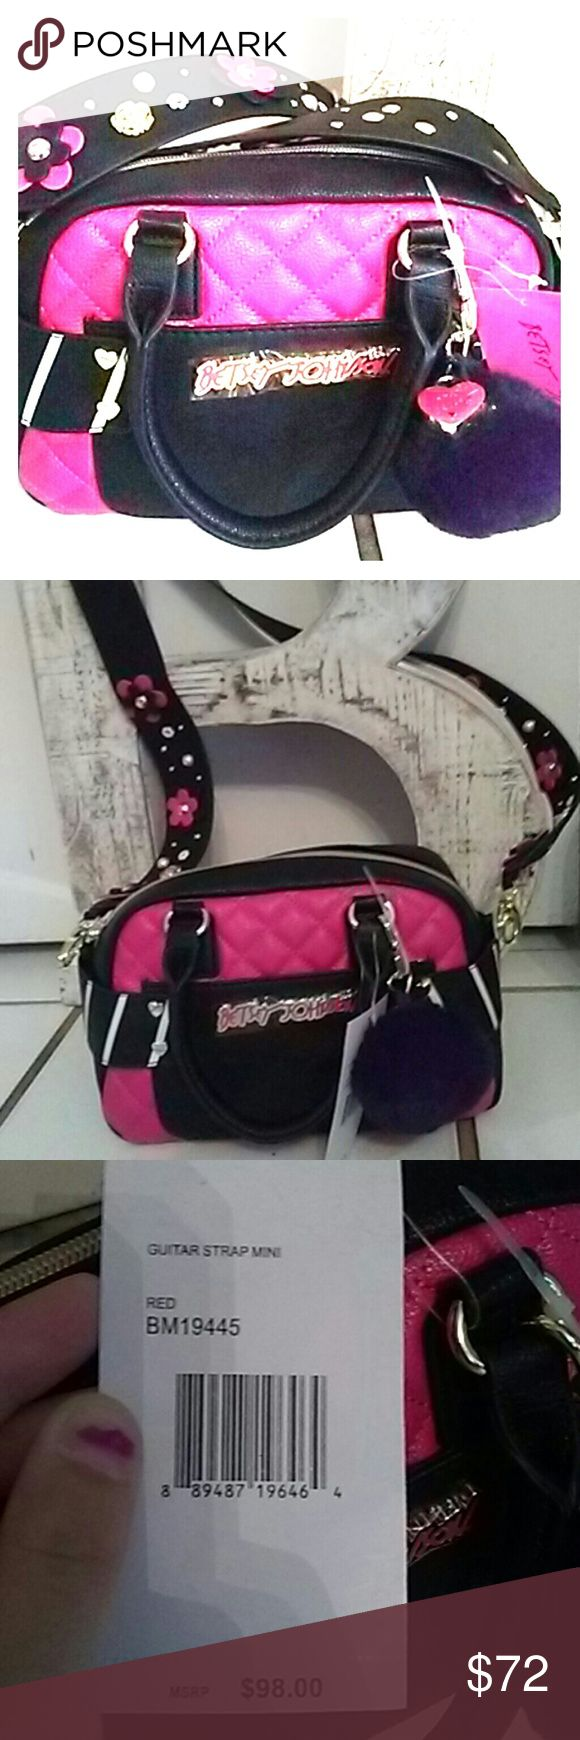 Betsey Johnson Guitar Strap Mini New Guitar strap mini  New with tags $98.00 Excellent awesome very cute and trendy Retro. Boho super adorable  ?? Betsey Johnson Bags Mini Bags